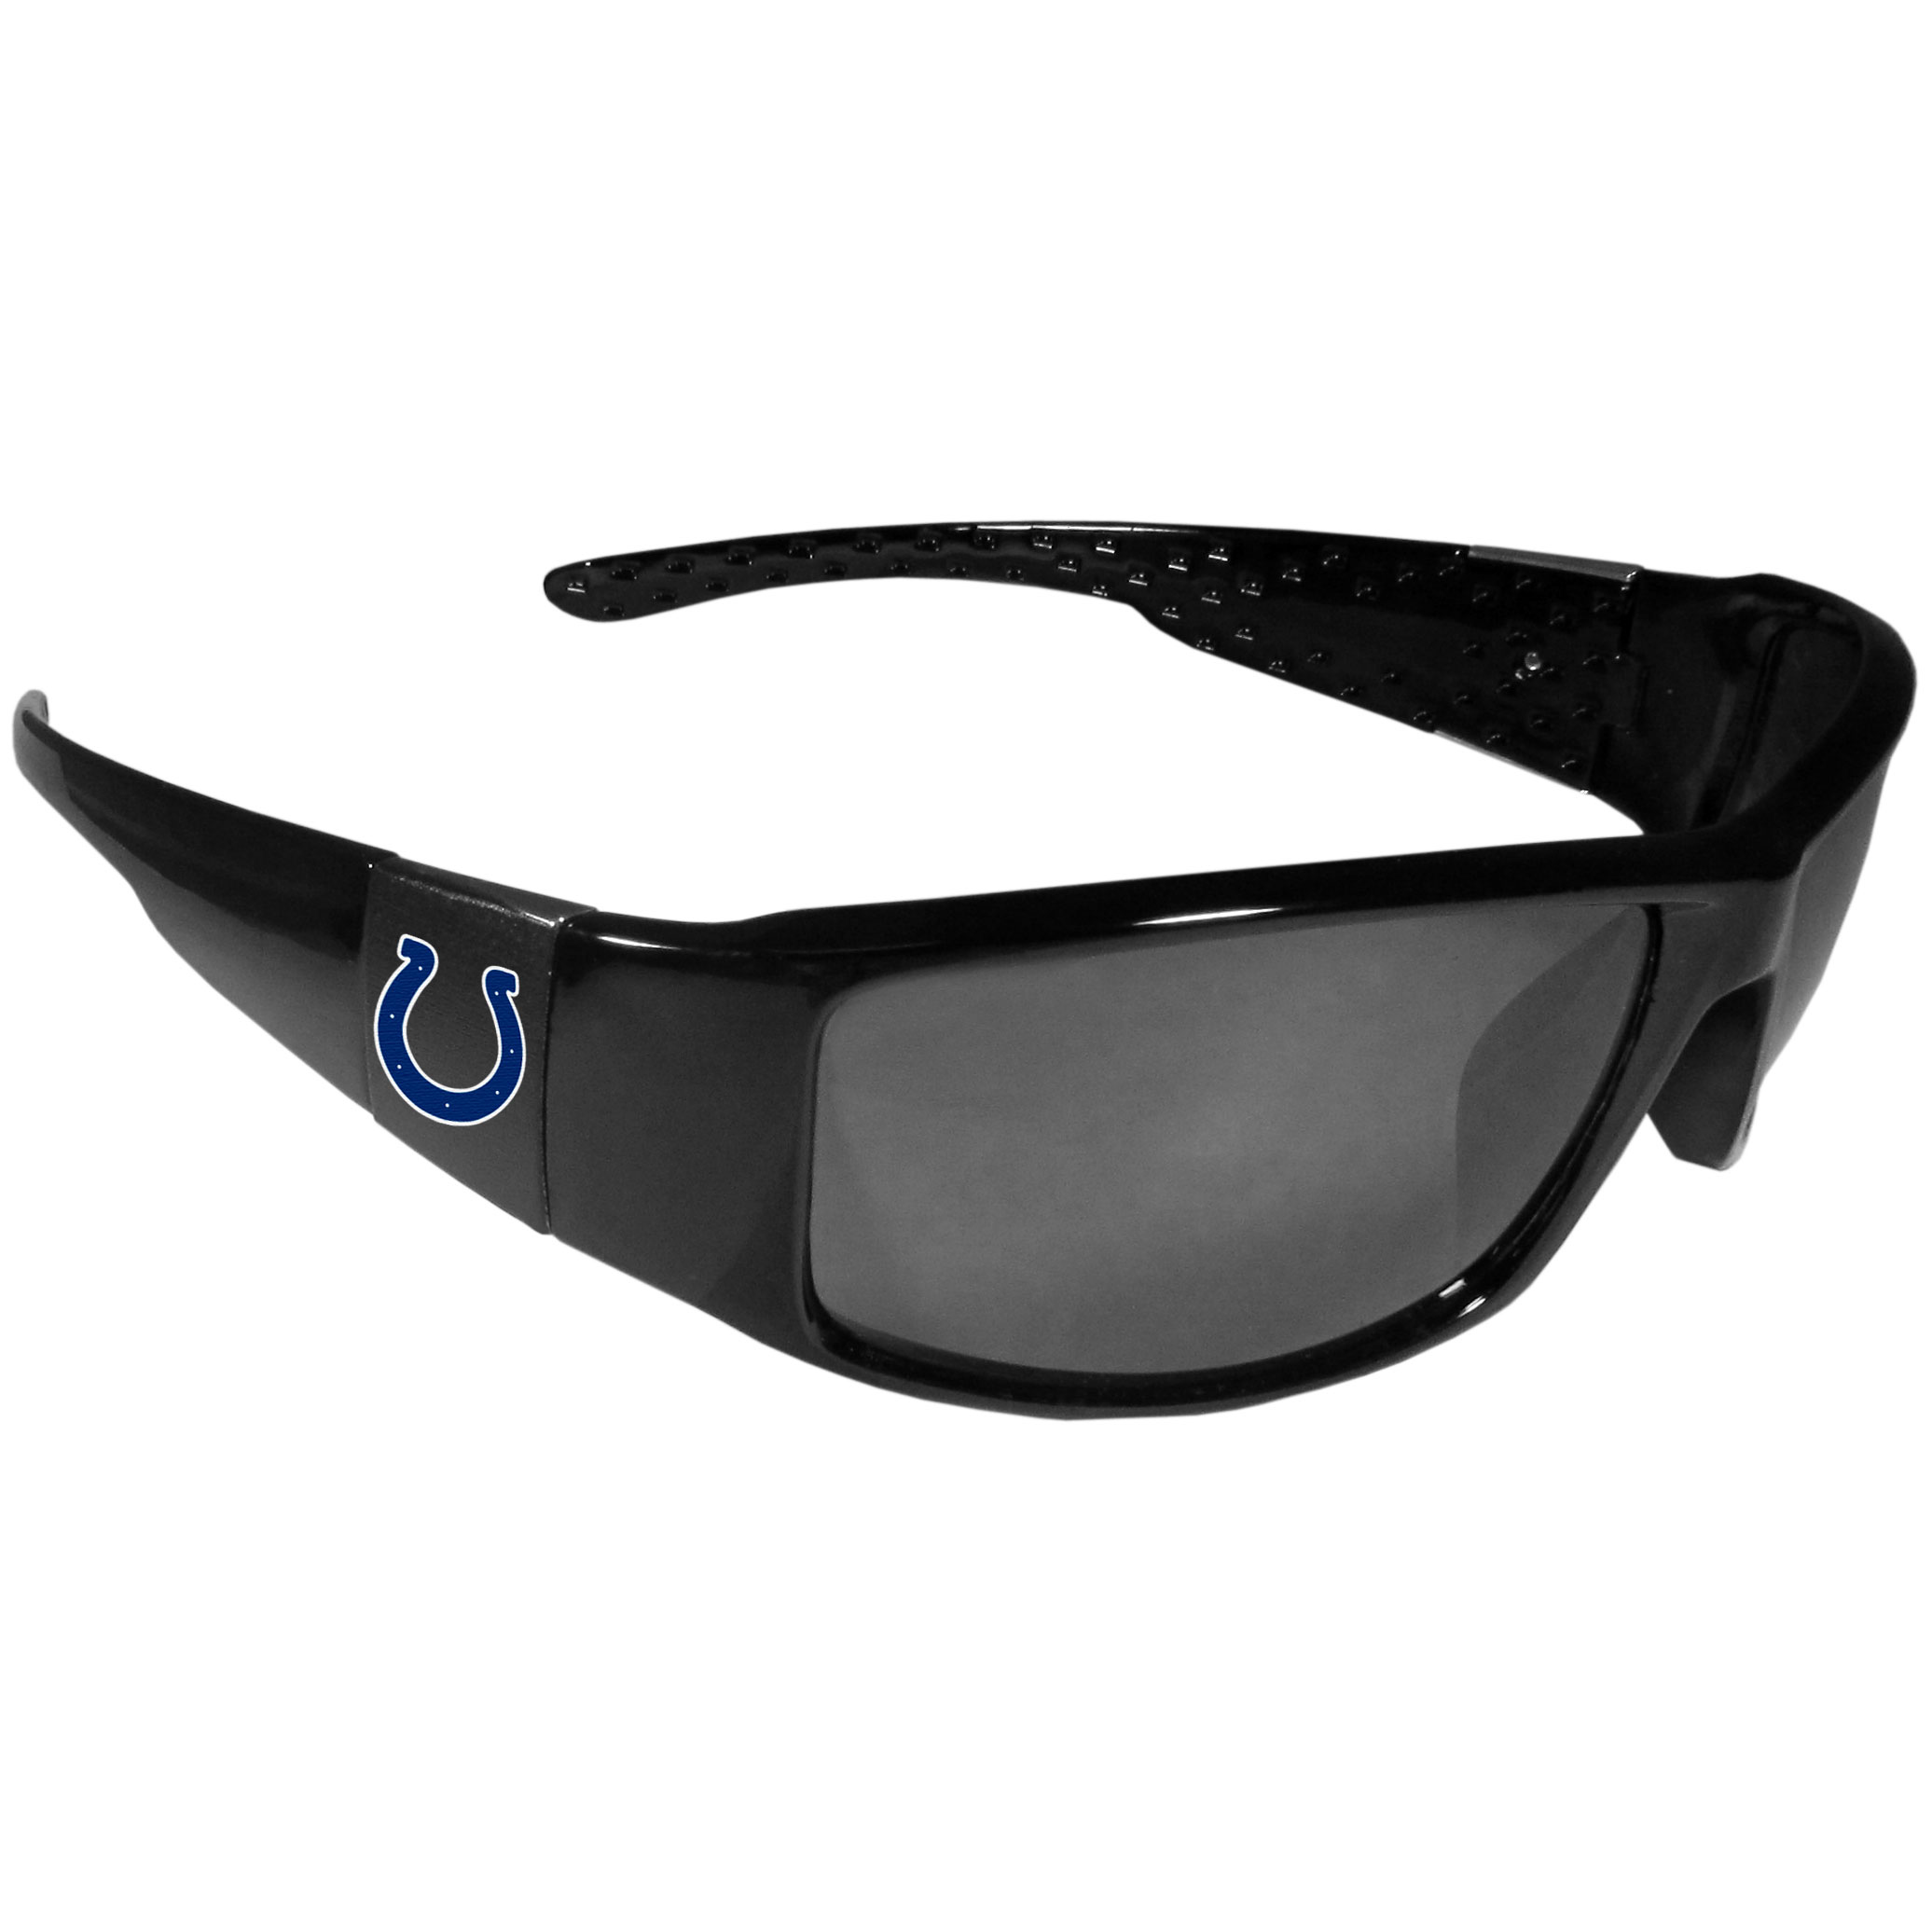 Indianapolis Colts Black Wrap Sunglasses - These designer inspired frames have a sleek look in all black with  Indianapolis Colts shields on each arm with a printed logo. The shades are perfect for any outdoor activity like; golfing, driving, hiking, fishing or cheering on the team at a tailgating event or at a home game day BBQ with a lens rating of 100% UVA/UVB for maximum UV protection. The high-quality frames are as durable as they are fashionable and with their classic look they are the perfect fan accessory that can be worn everyday for every occasion.